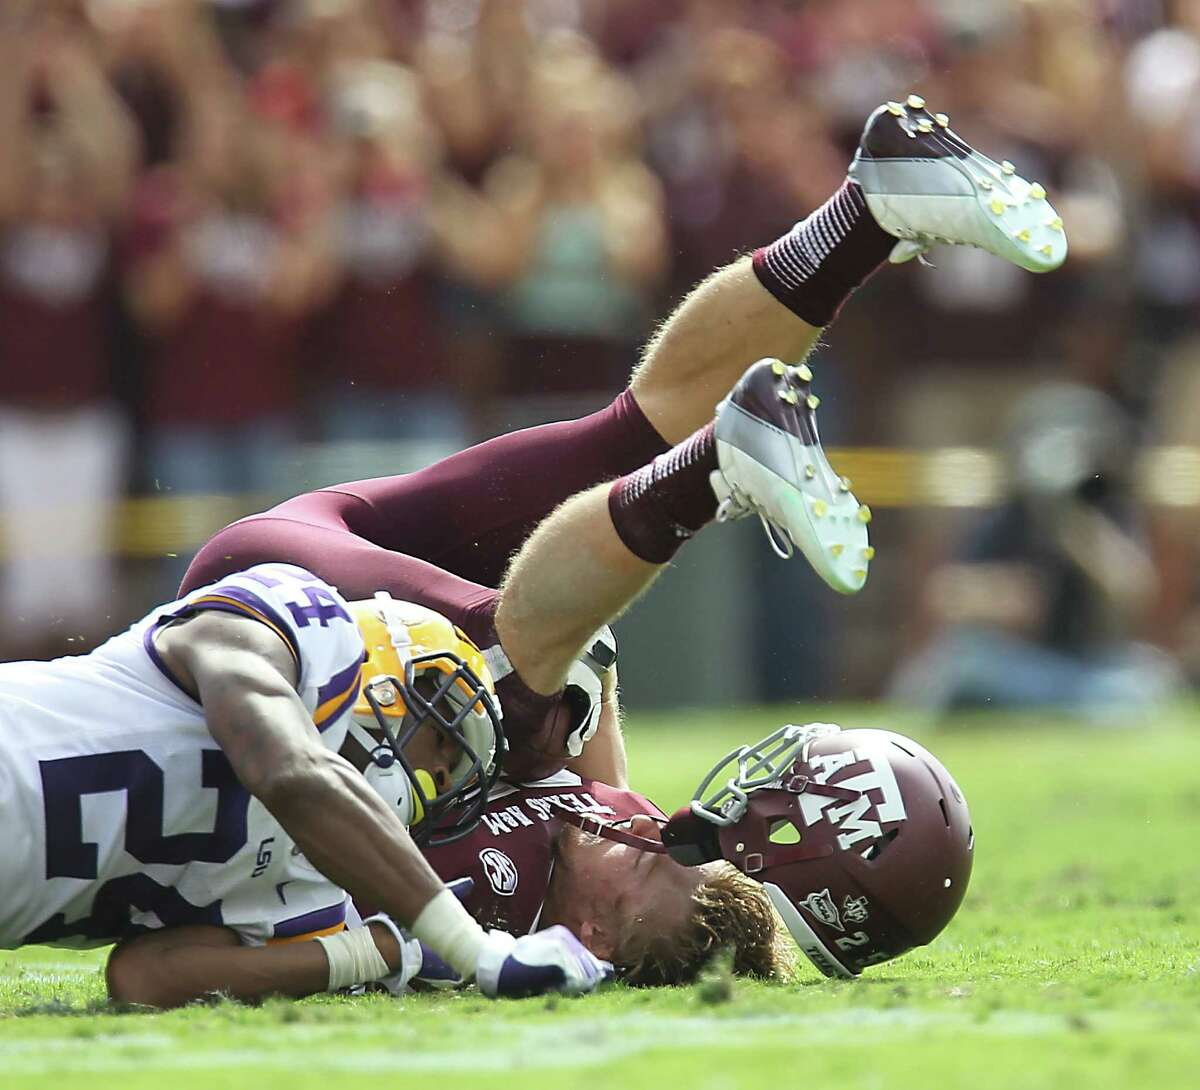 Texas A&M's Ryan Swope, right, crashing to the ground against LSU last year, retired from football because of concussions to spoil his dreams of playing in NFL.